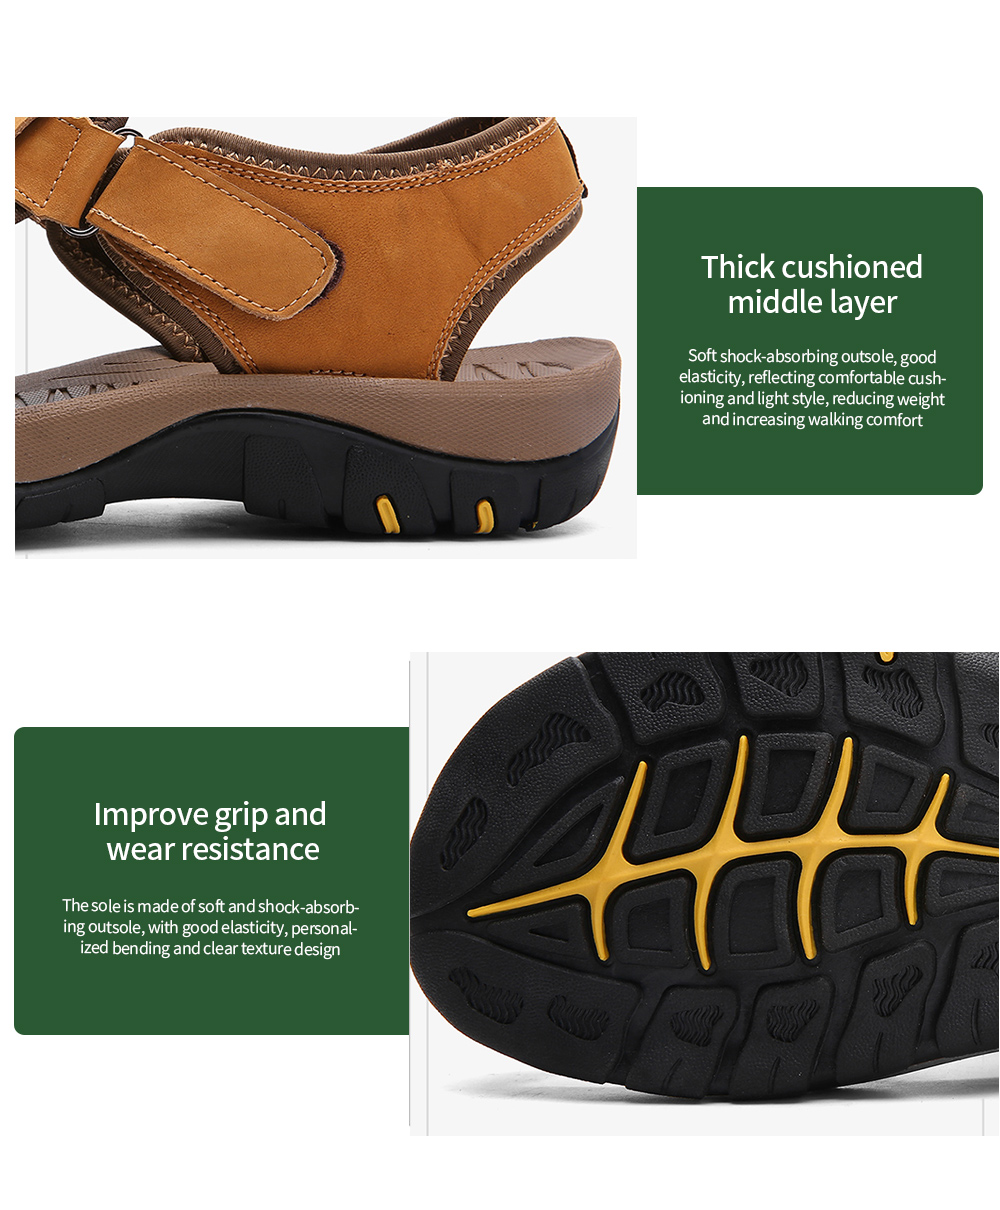 AILADUN Men Sandals Summer Outdoor Leisure Shoes Thick cushioned middle layer, Improve grip and wear resistance